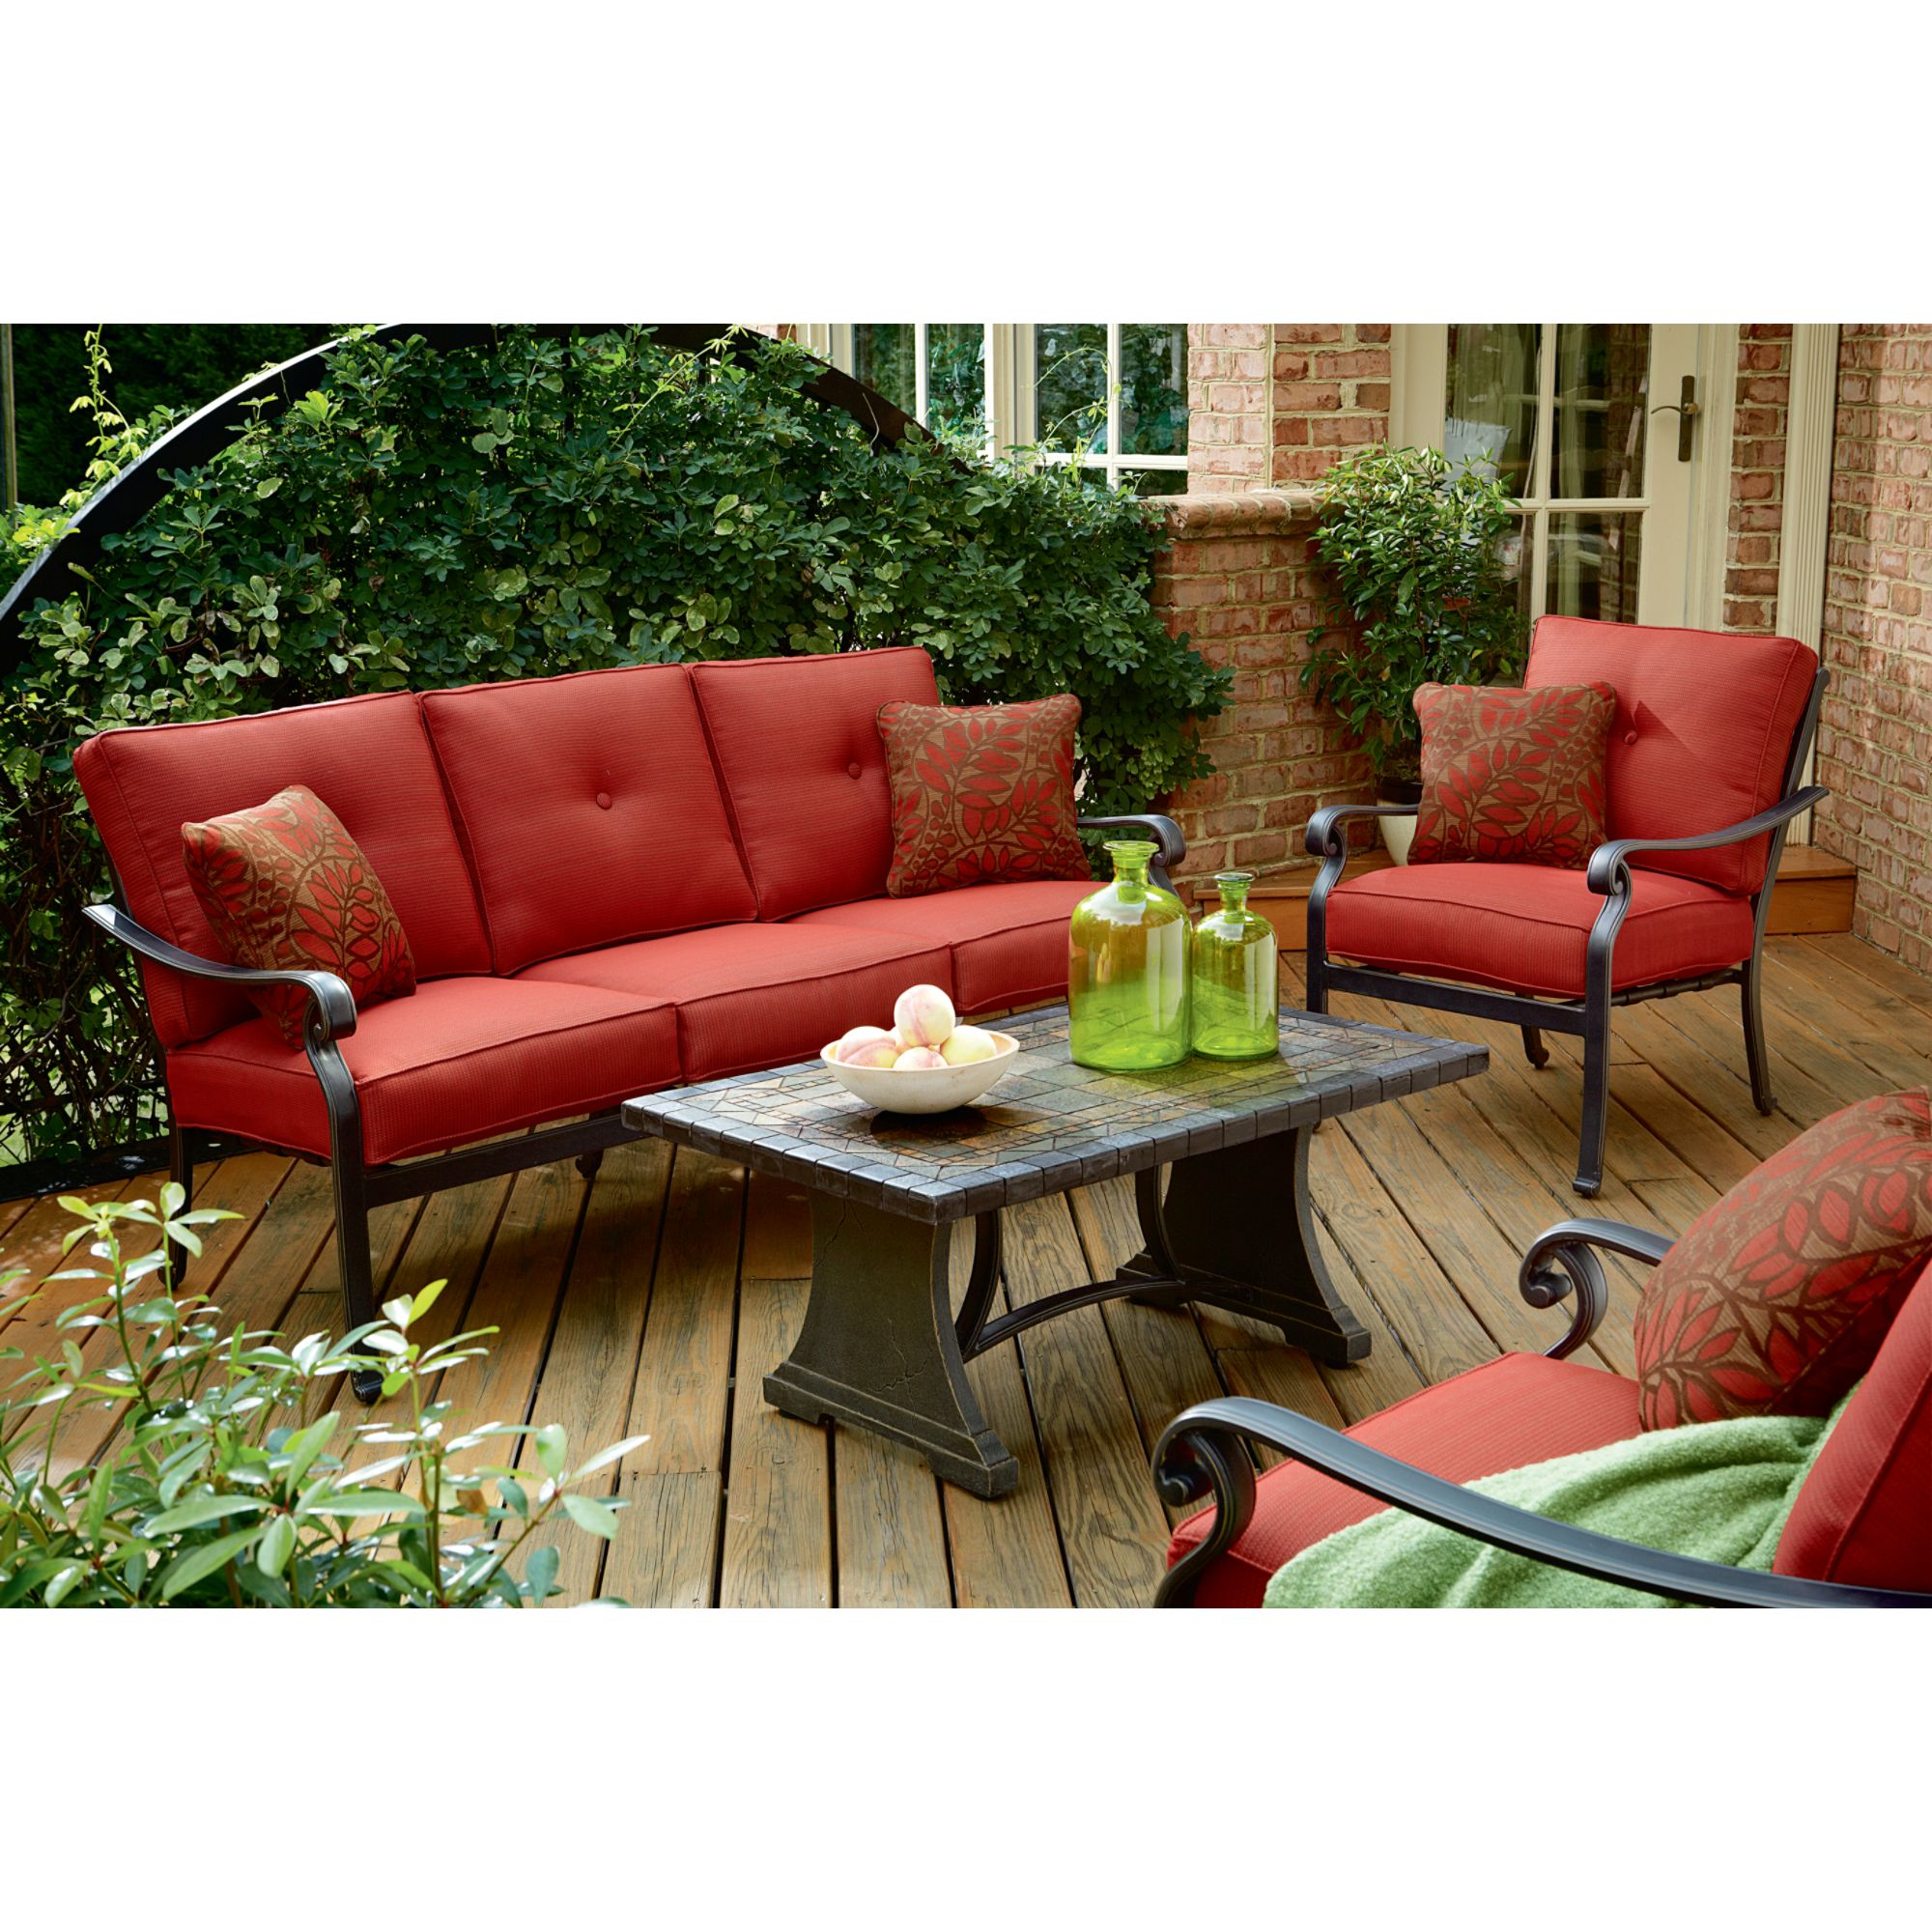 Panorama 4 Piece Patio Seating Set Enjoy Outdoors